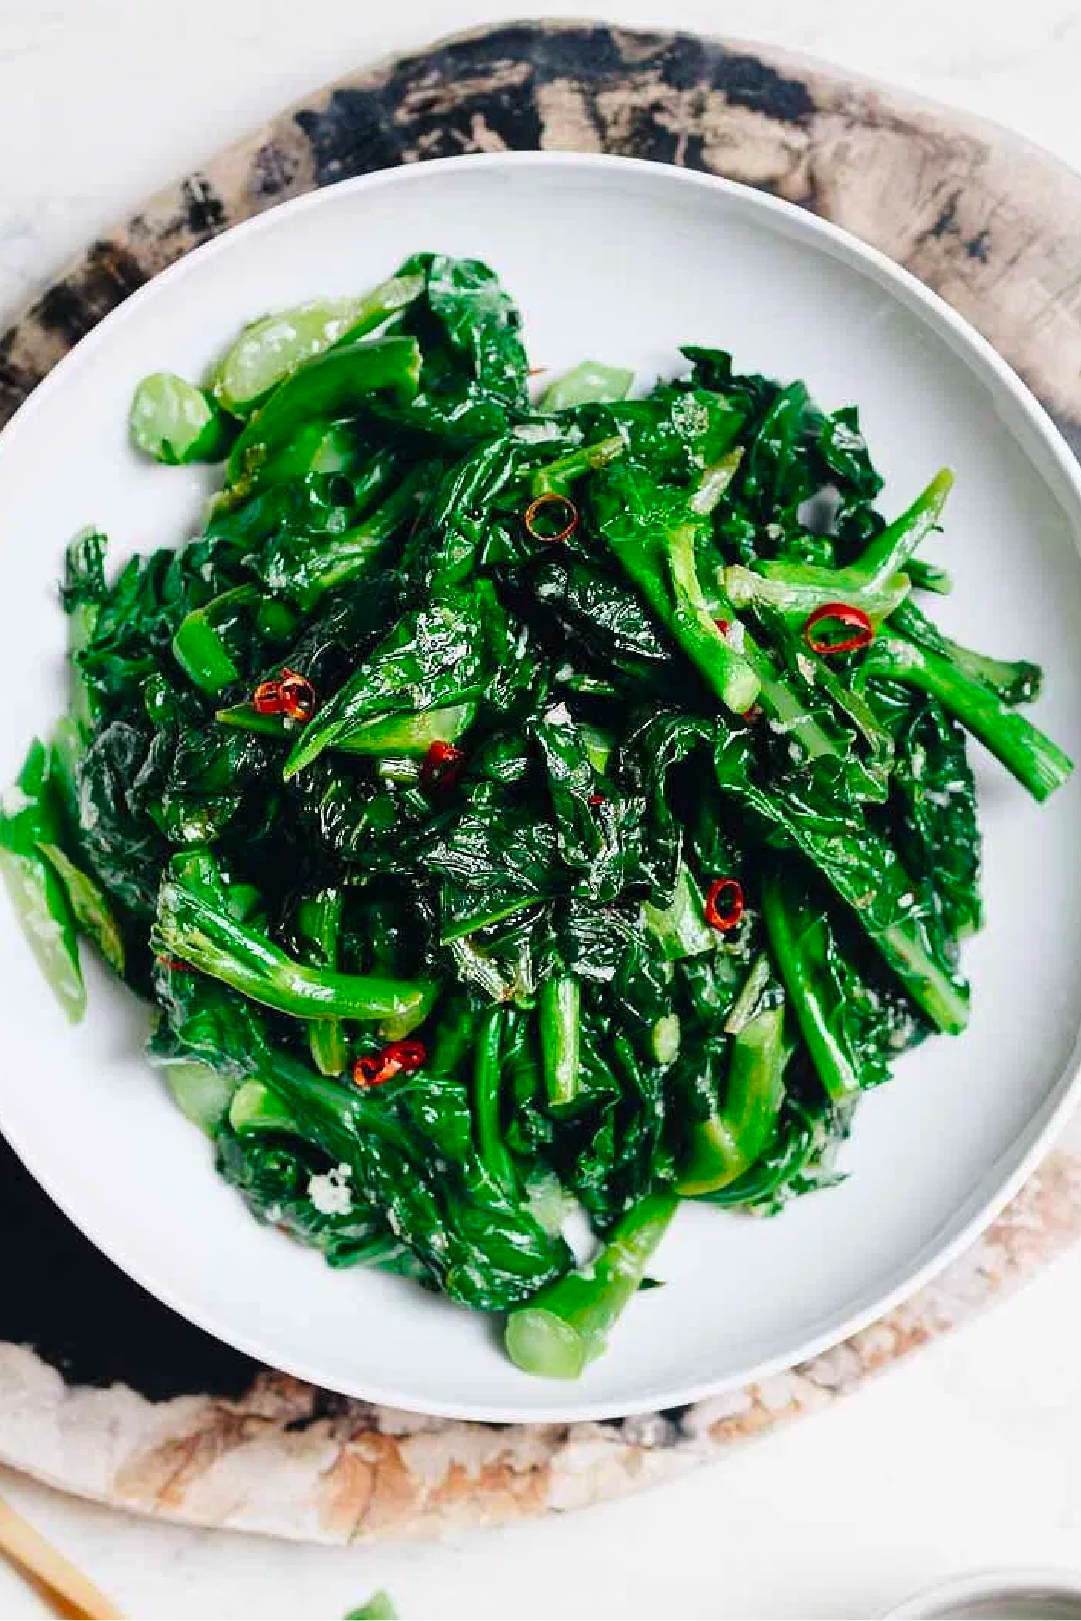 Make amazing Stir Fry with our leafy greens